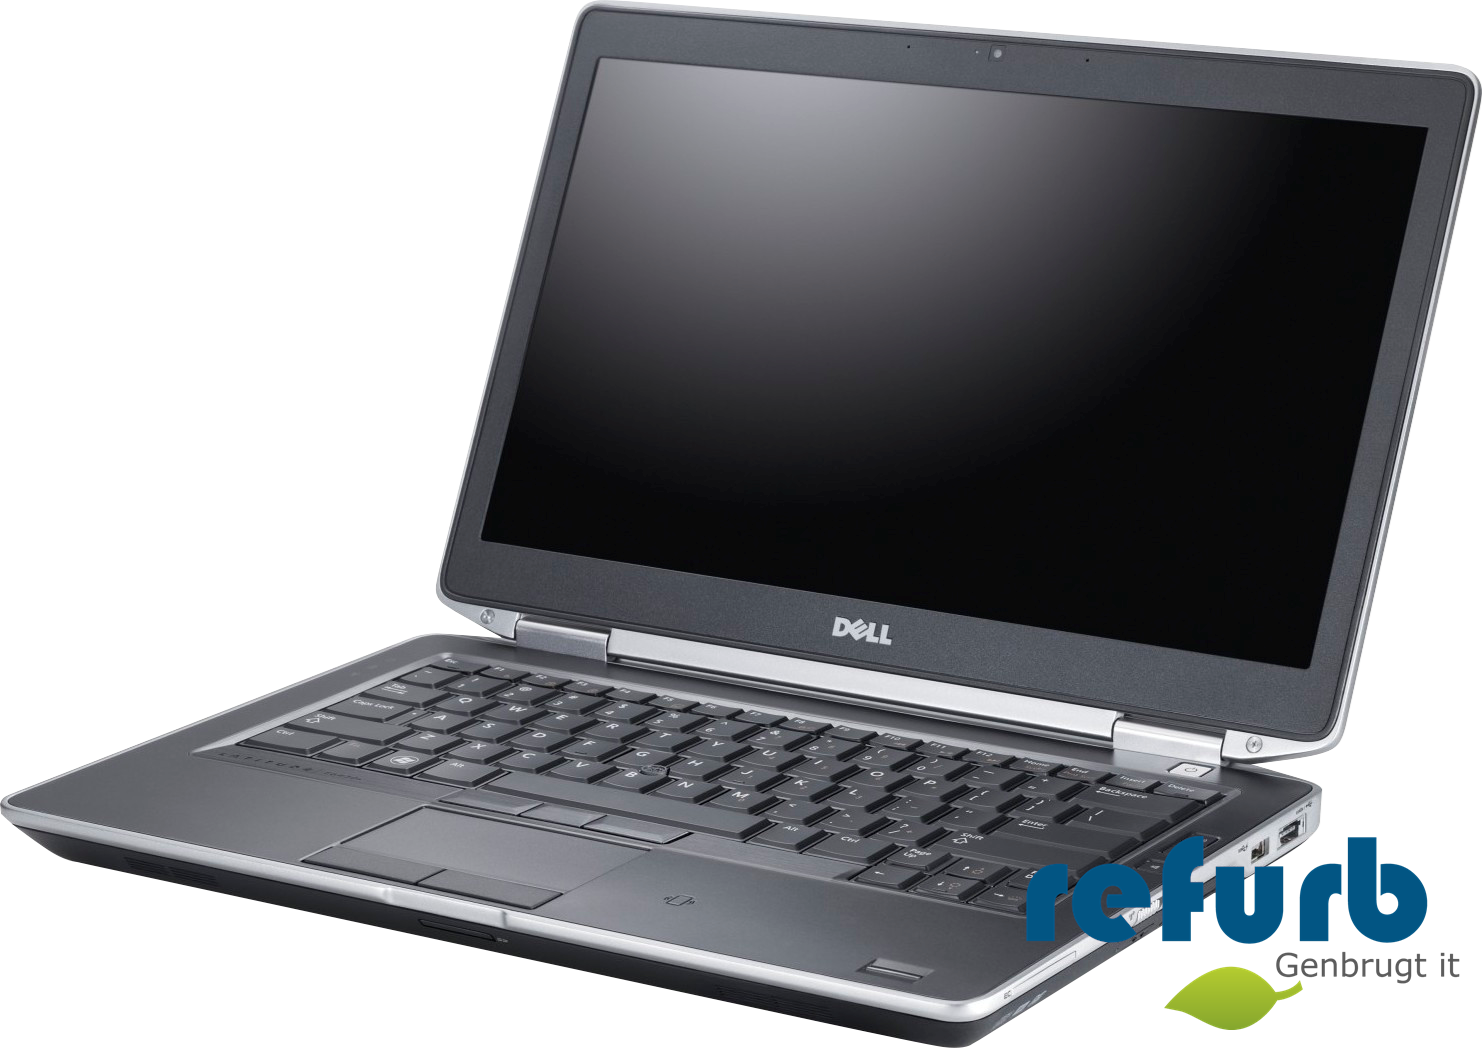 Dell – Dell latitude e6430 på refurb